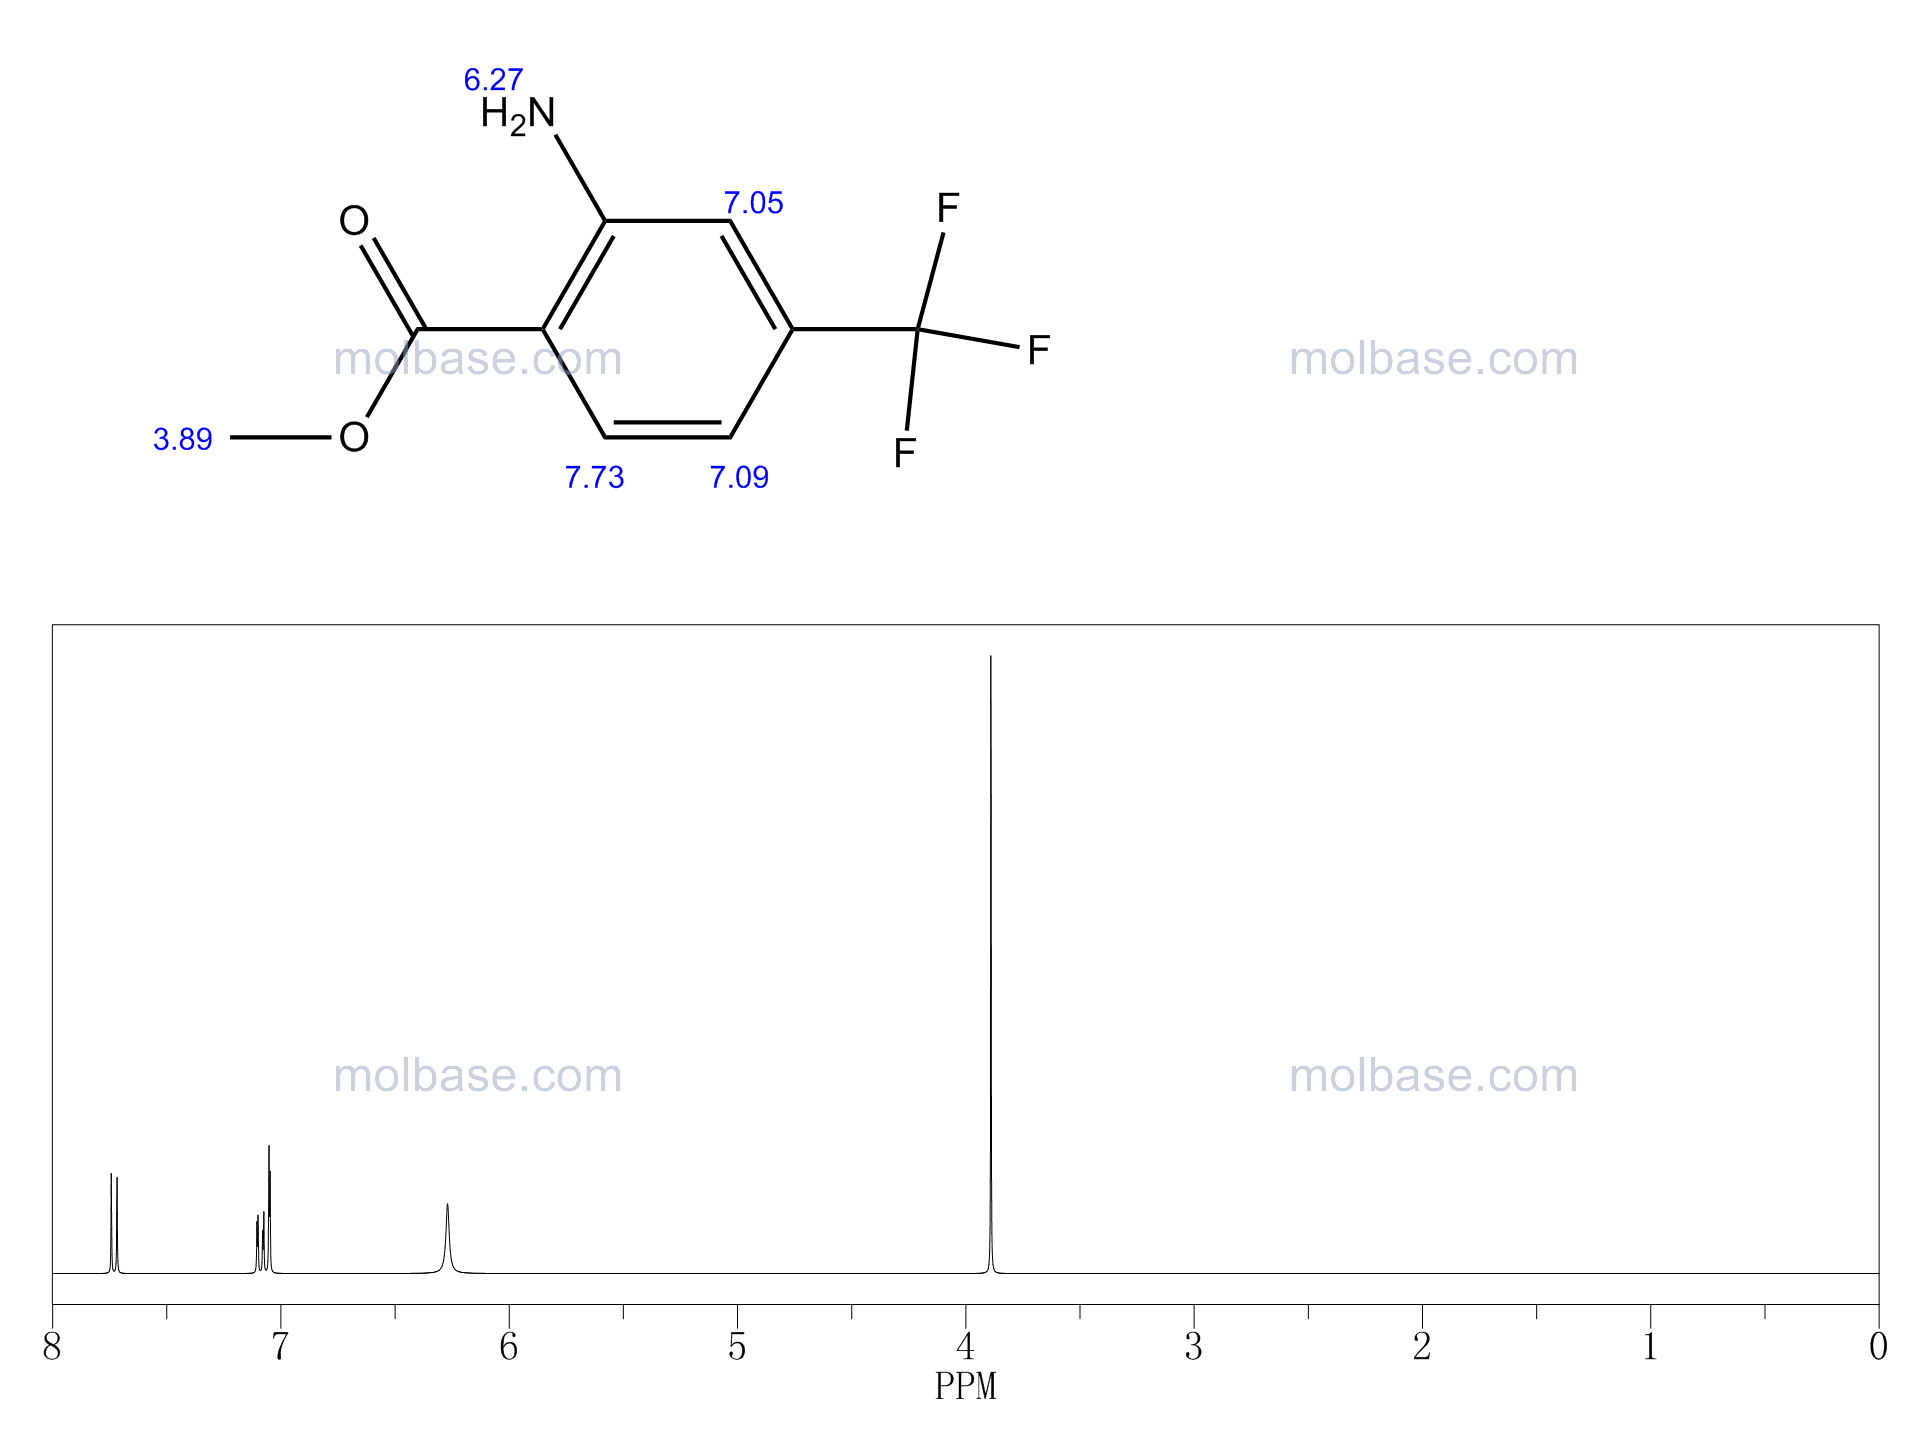 Methyl 2-amino-4-(trifluoromethyl)benzoate NMR spectra analysis, Chemical CAS NO. 61500-87-6 NMR spectral analysis, Methyl 2-amino-4-(trifluoromethyl)benzoate C-NMR spectrum